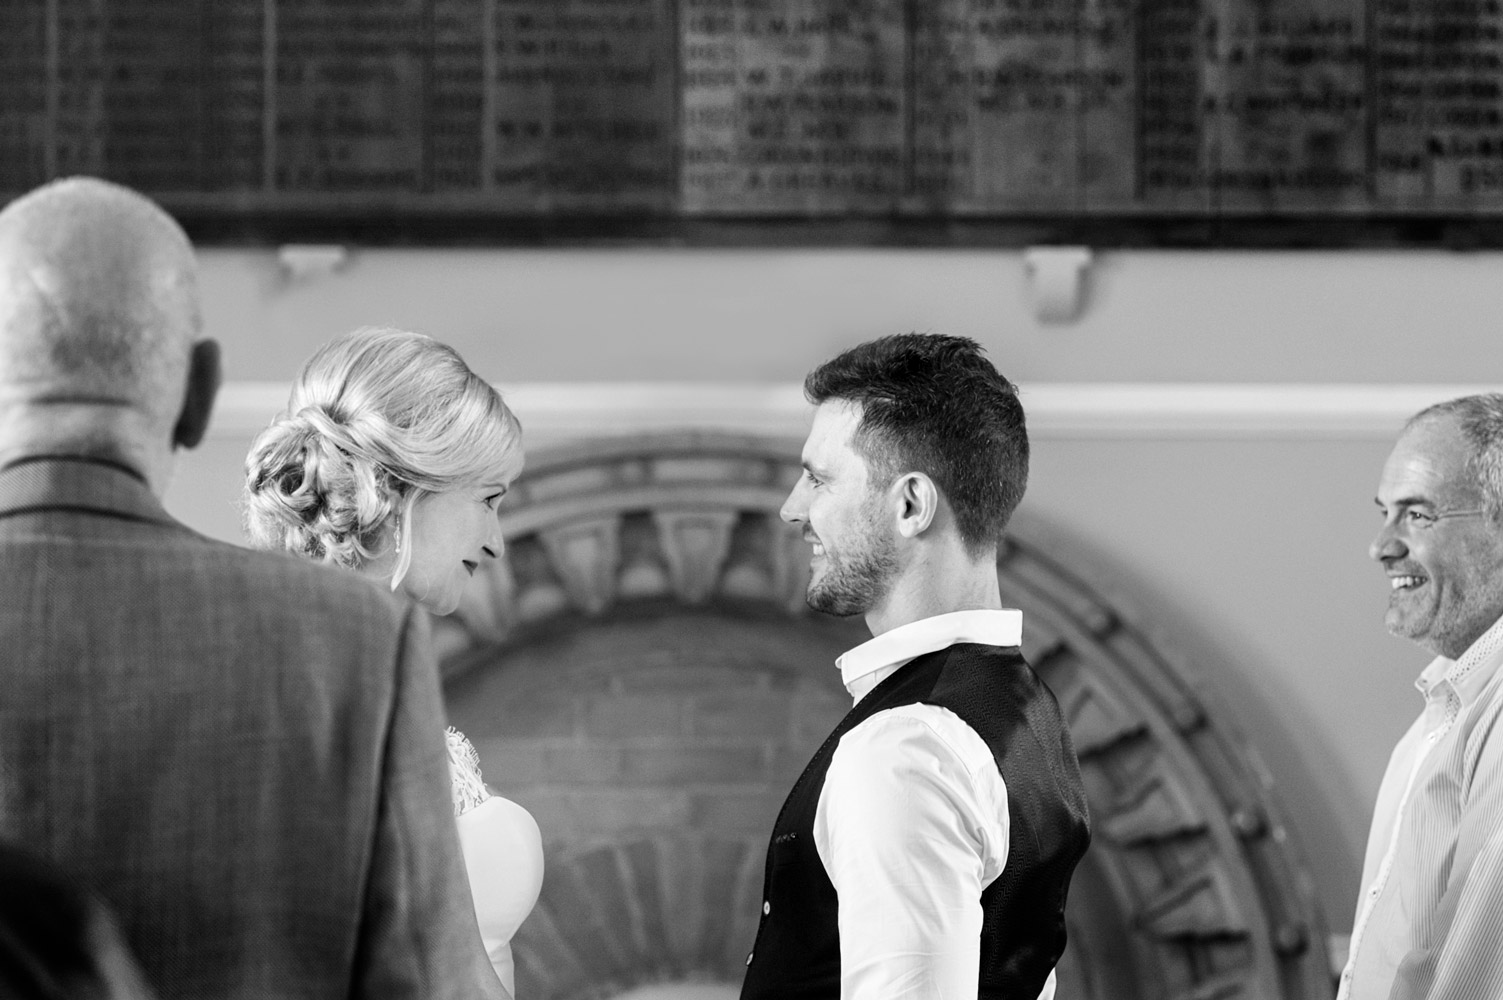 Wedding ceremony at Arundel Town Hall